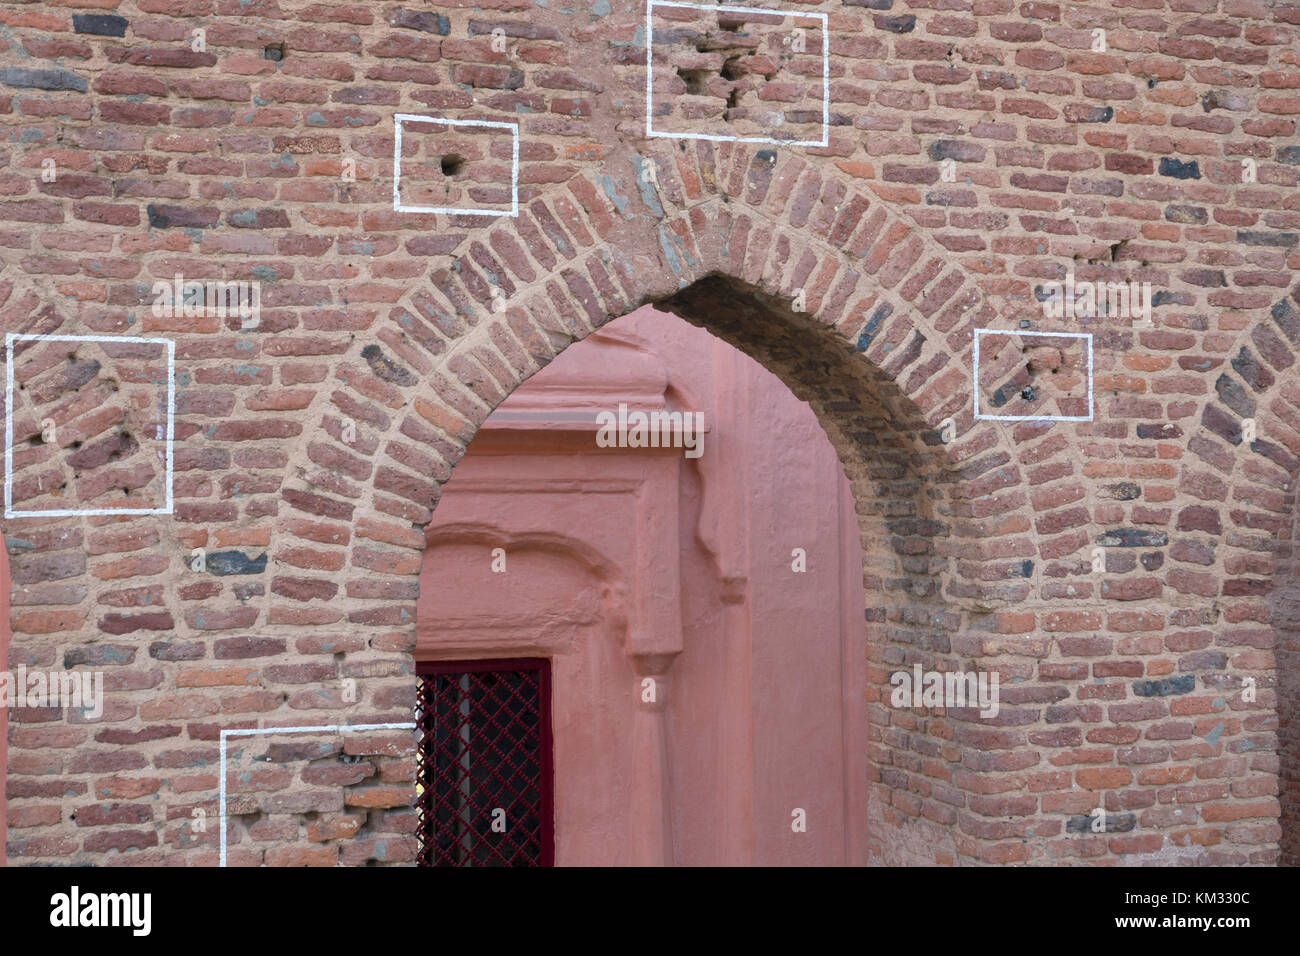 Machine gun bullet holes in brick wall at Jallianwala Bagh, Amritsar, where the British Army opened fire and massacred Stock Photo